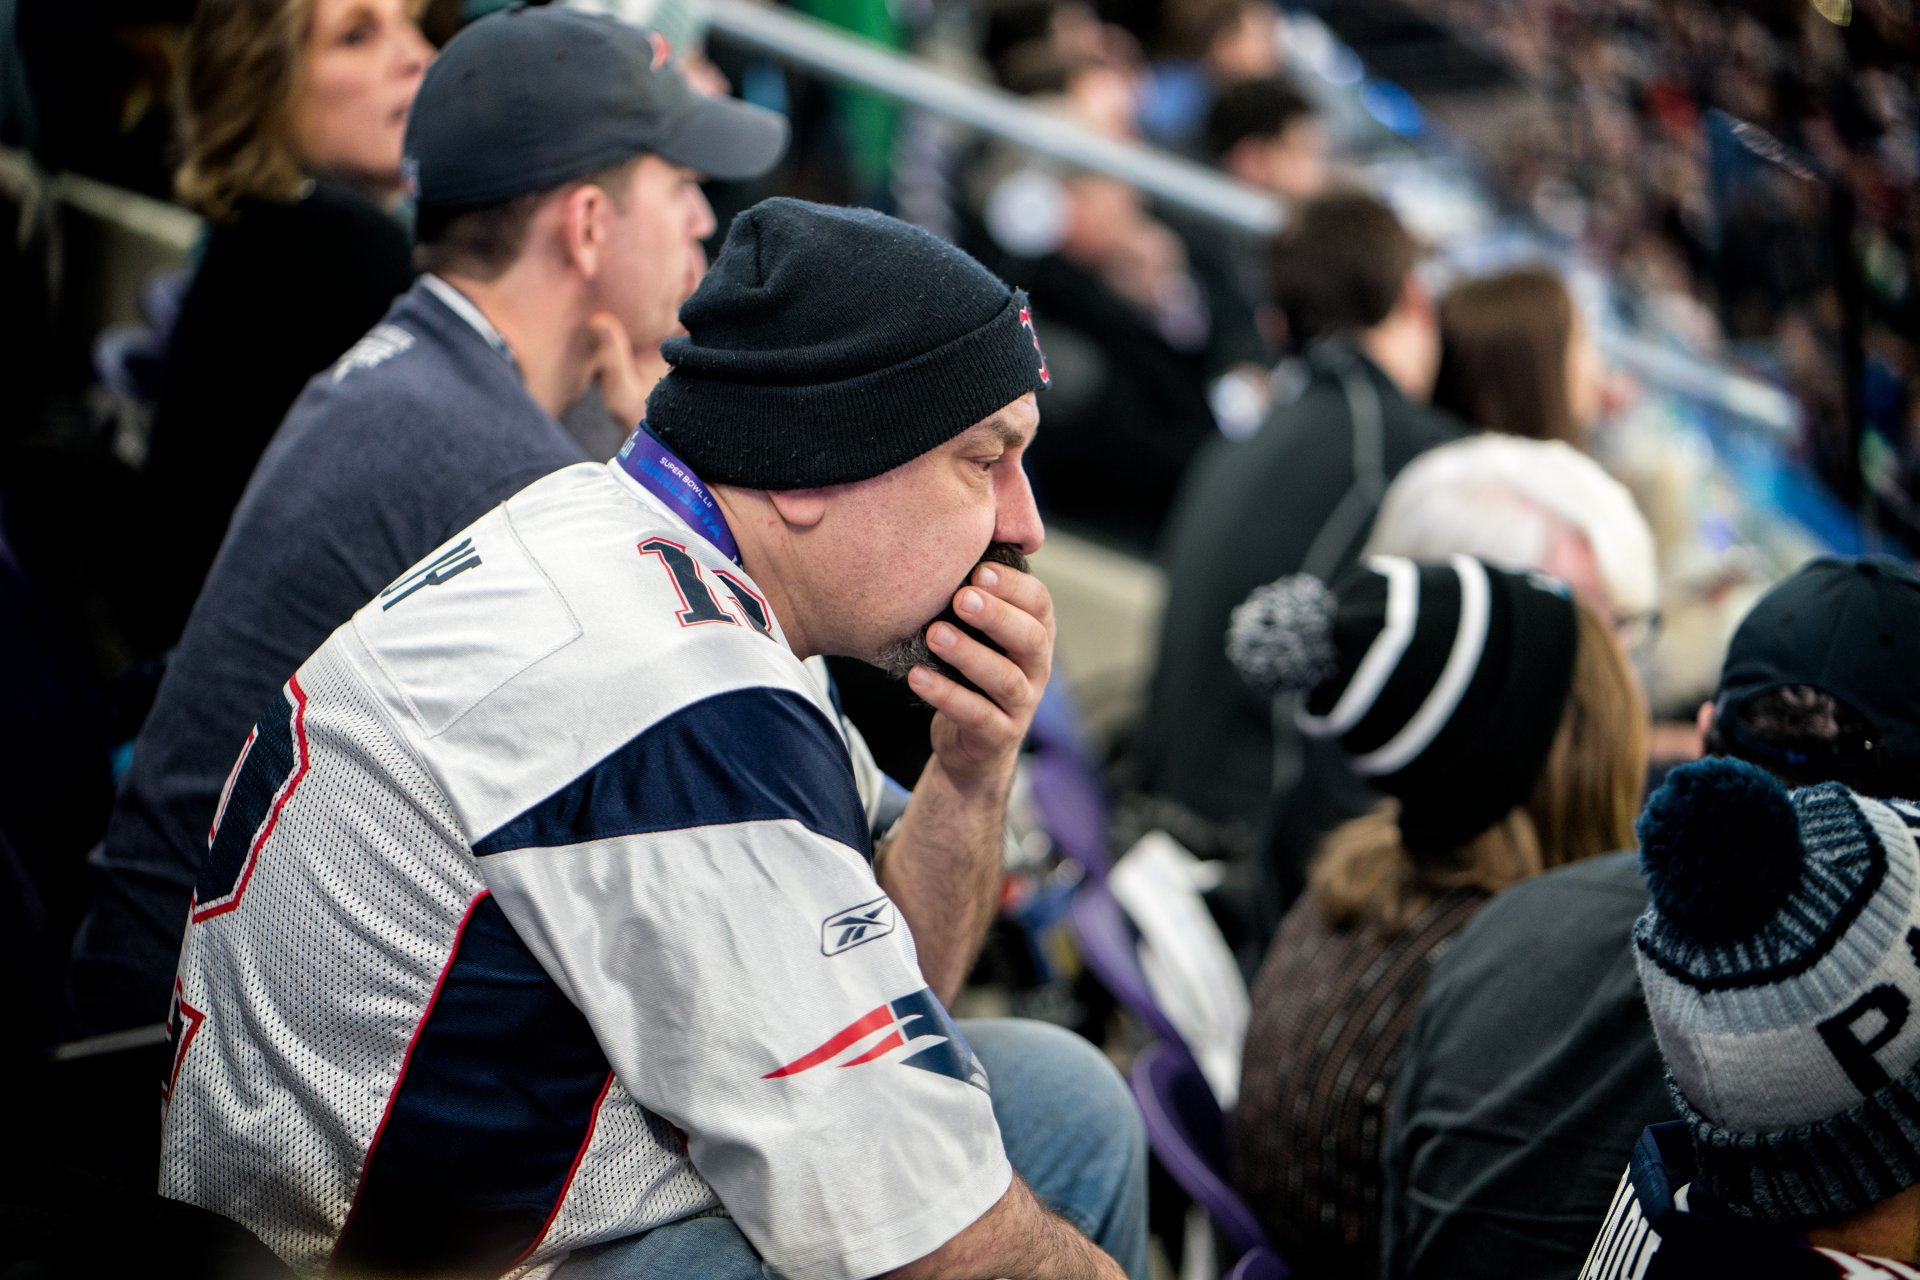 A Patriots fan watches the final seconds of Super Bowl LII (2018) in Minneapolis. | Photo courtesy Lorie Shaull